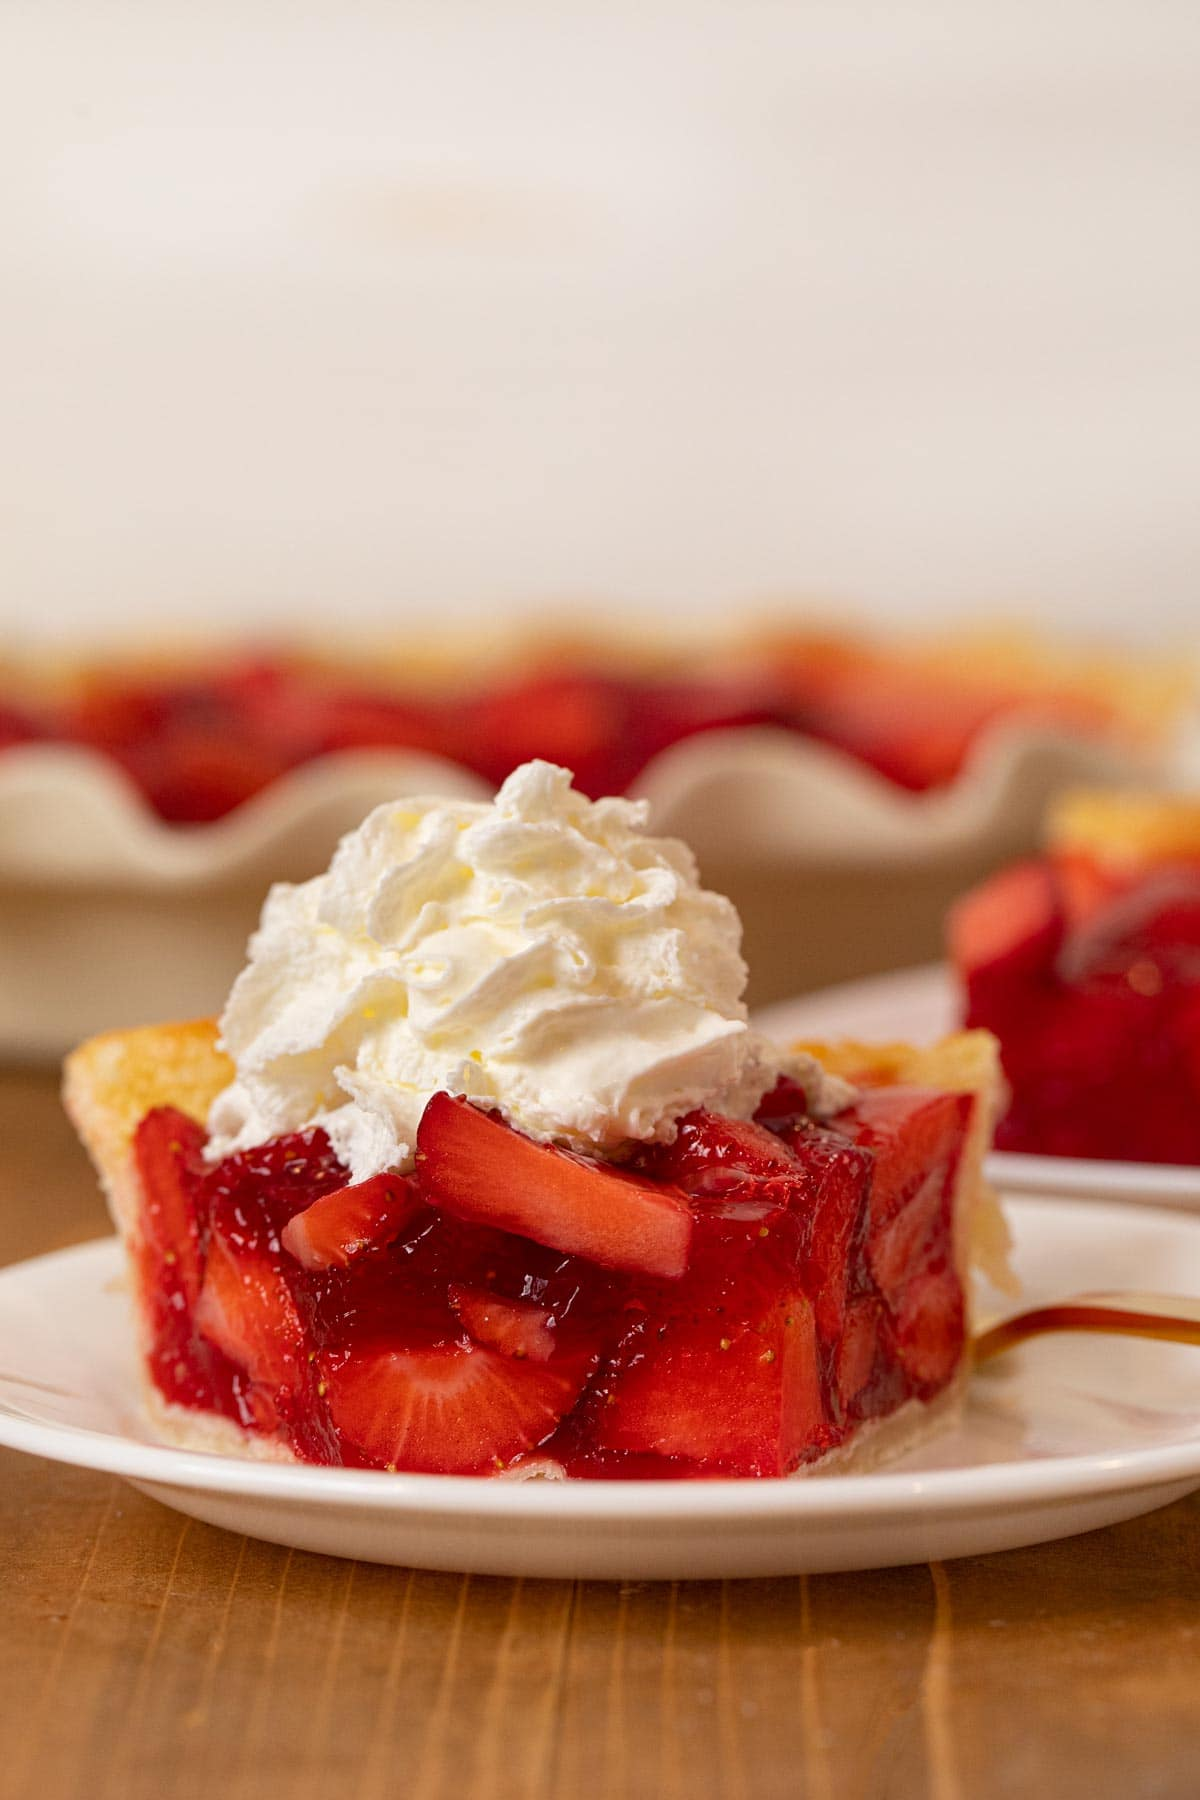 Fresh Strawberry Pie slice on plate with whipped cream